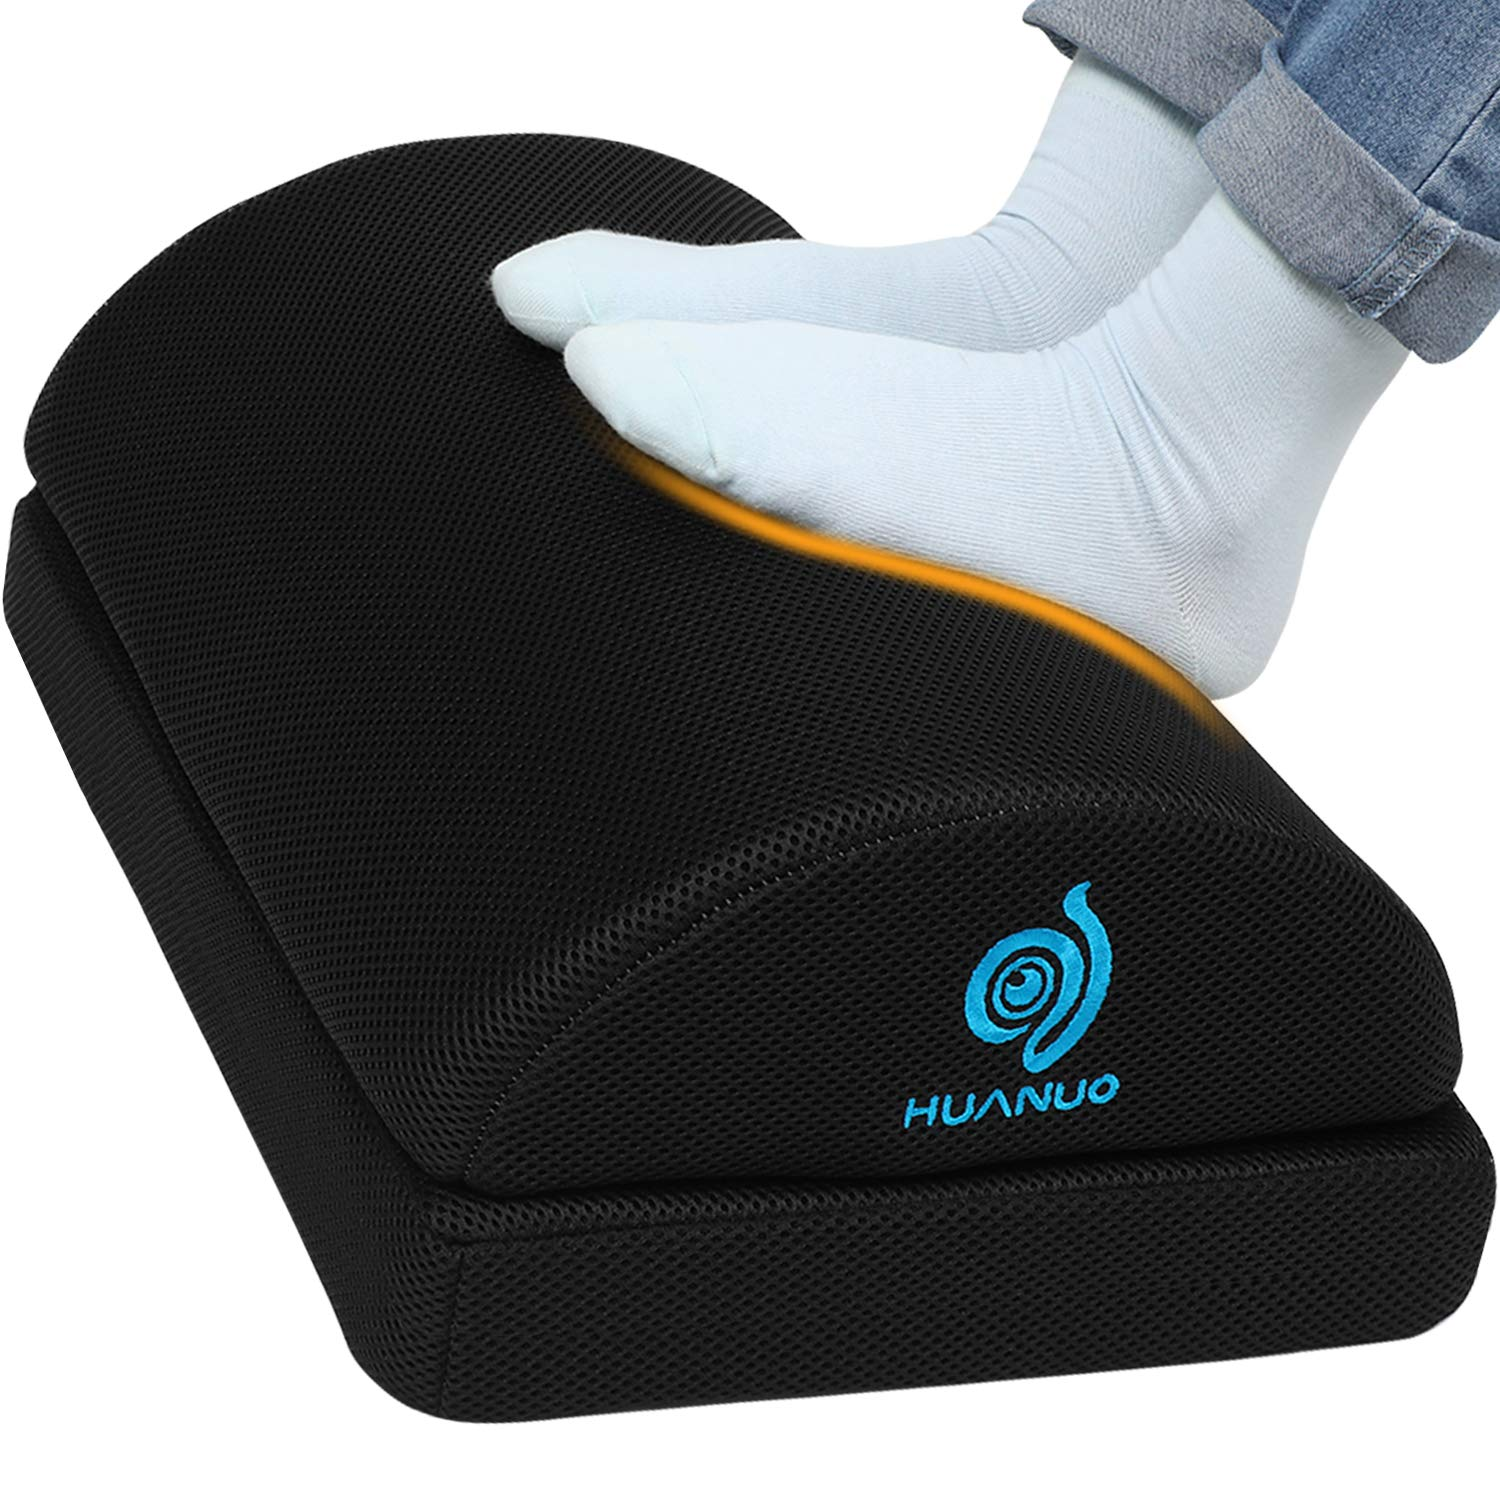 Adjustable Foot Rest - Under Desk Footrest with 2 Optional Covers for Desk, Airplane, Travel, Ergonomic Foot Rest Cushion with Magic Tape and Massaging Micro Beads for Office, Home, Plane by HUANUO by HUANUO